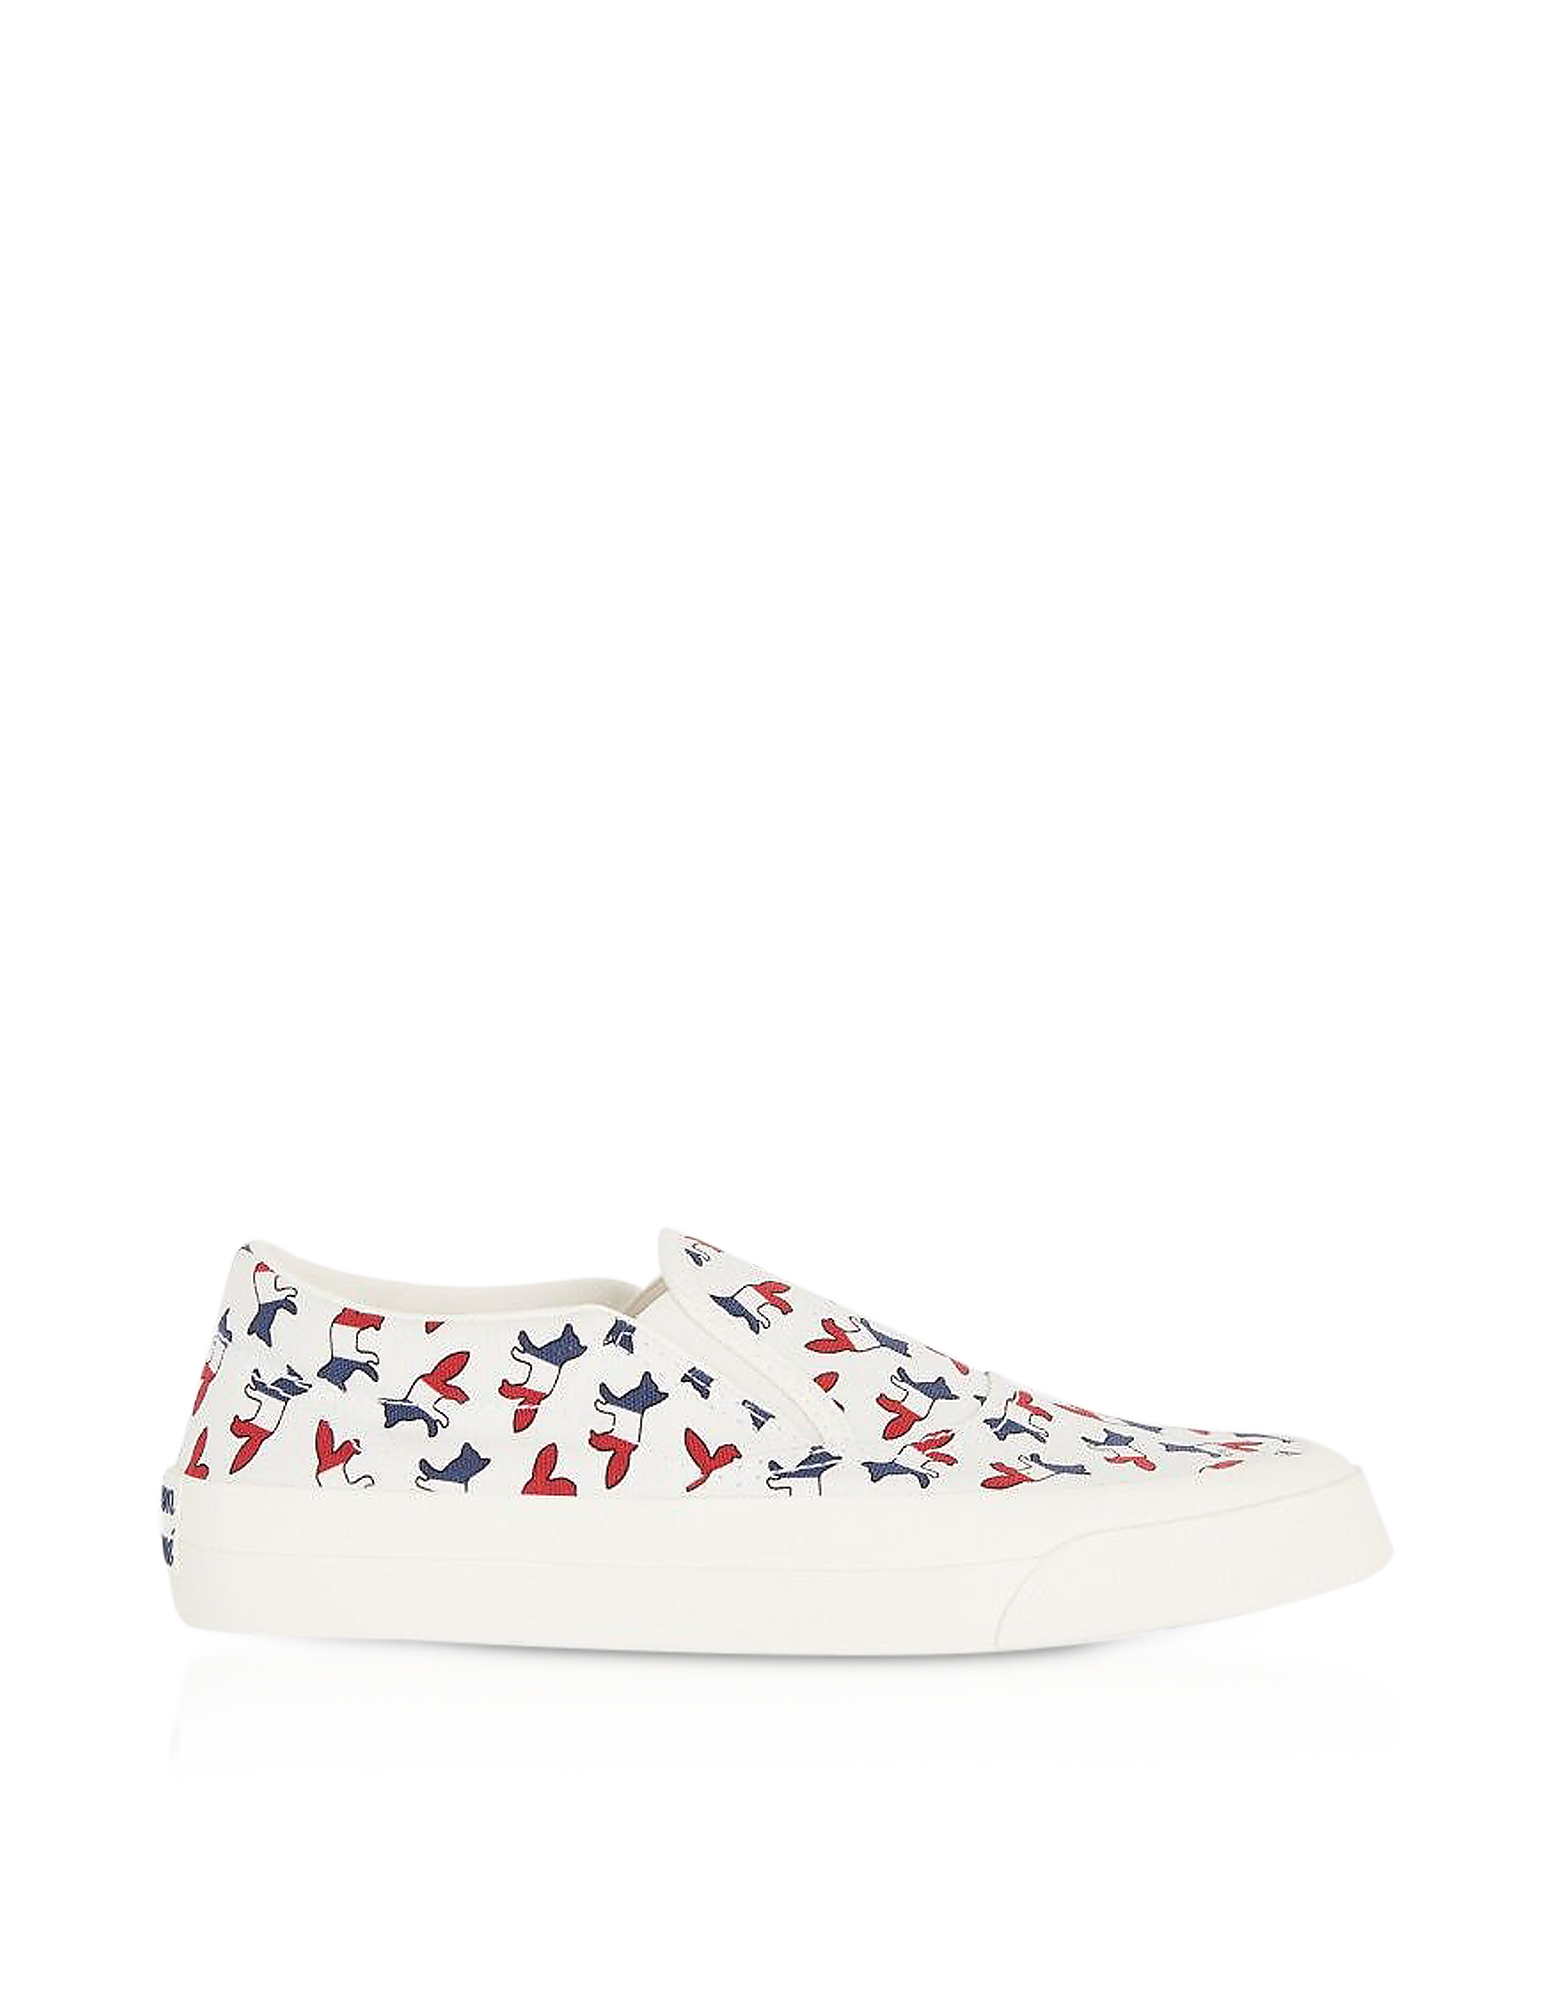 Maison Kitsuné Designer Shoes, All-Over Tricolor Fox Slip-On Sneakers